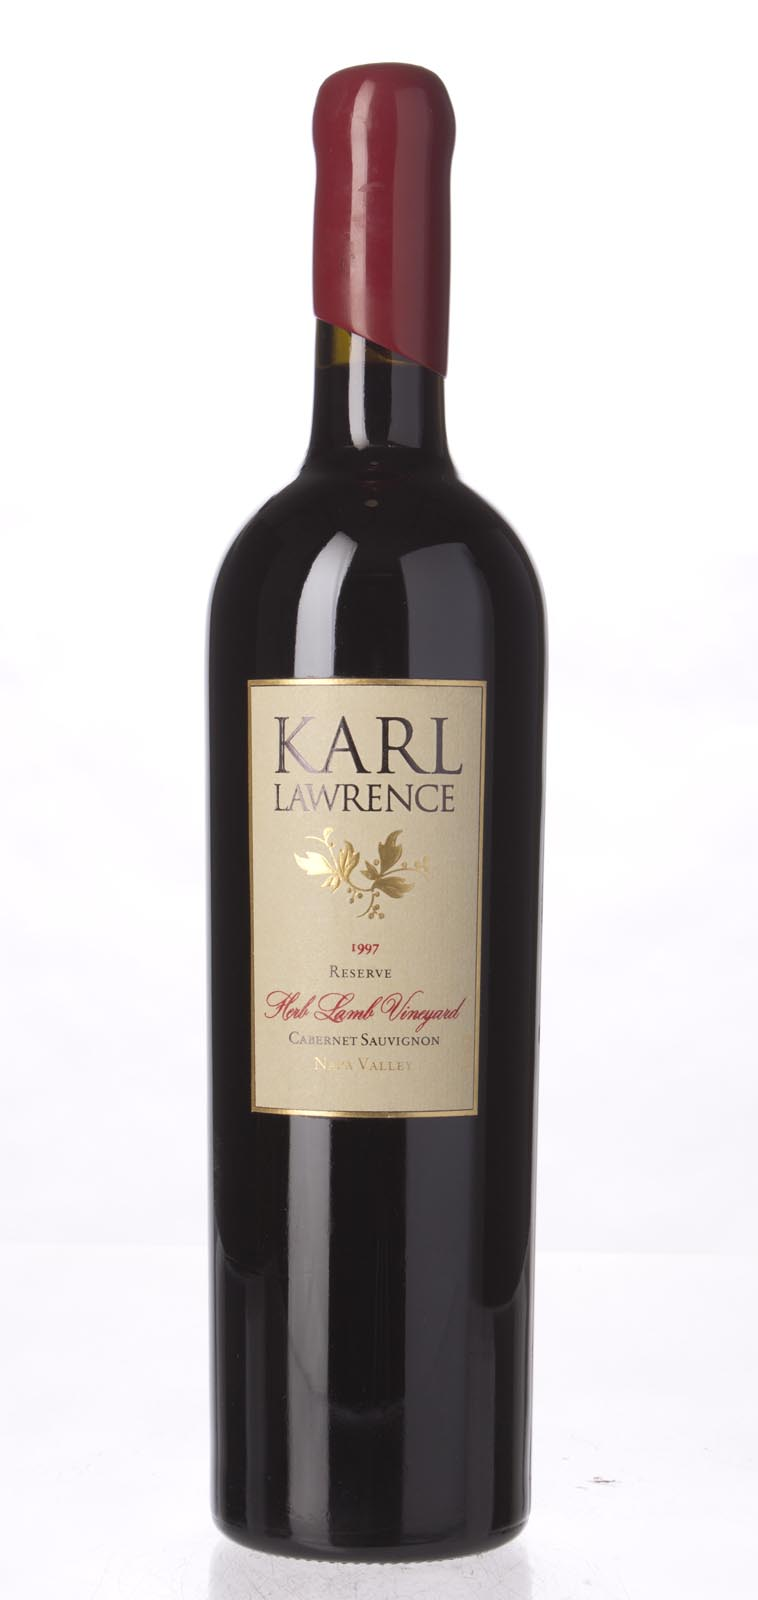 Karl Lawrence Cabernet Sauvignon Reserve Herb Lamb Vineyard 1997, 750mL () from The BPW - Merchants of rare and fine wines.